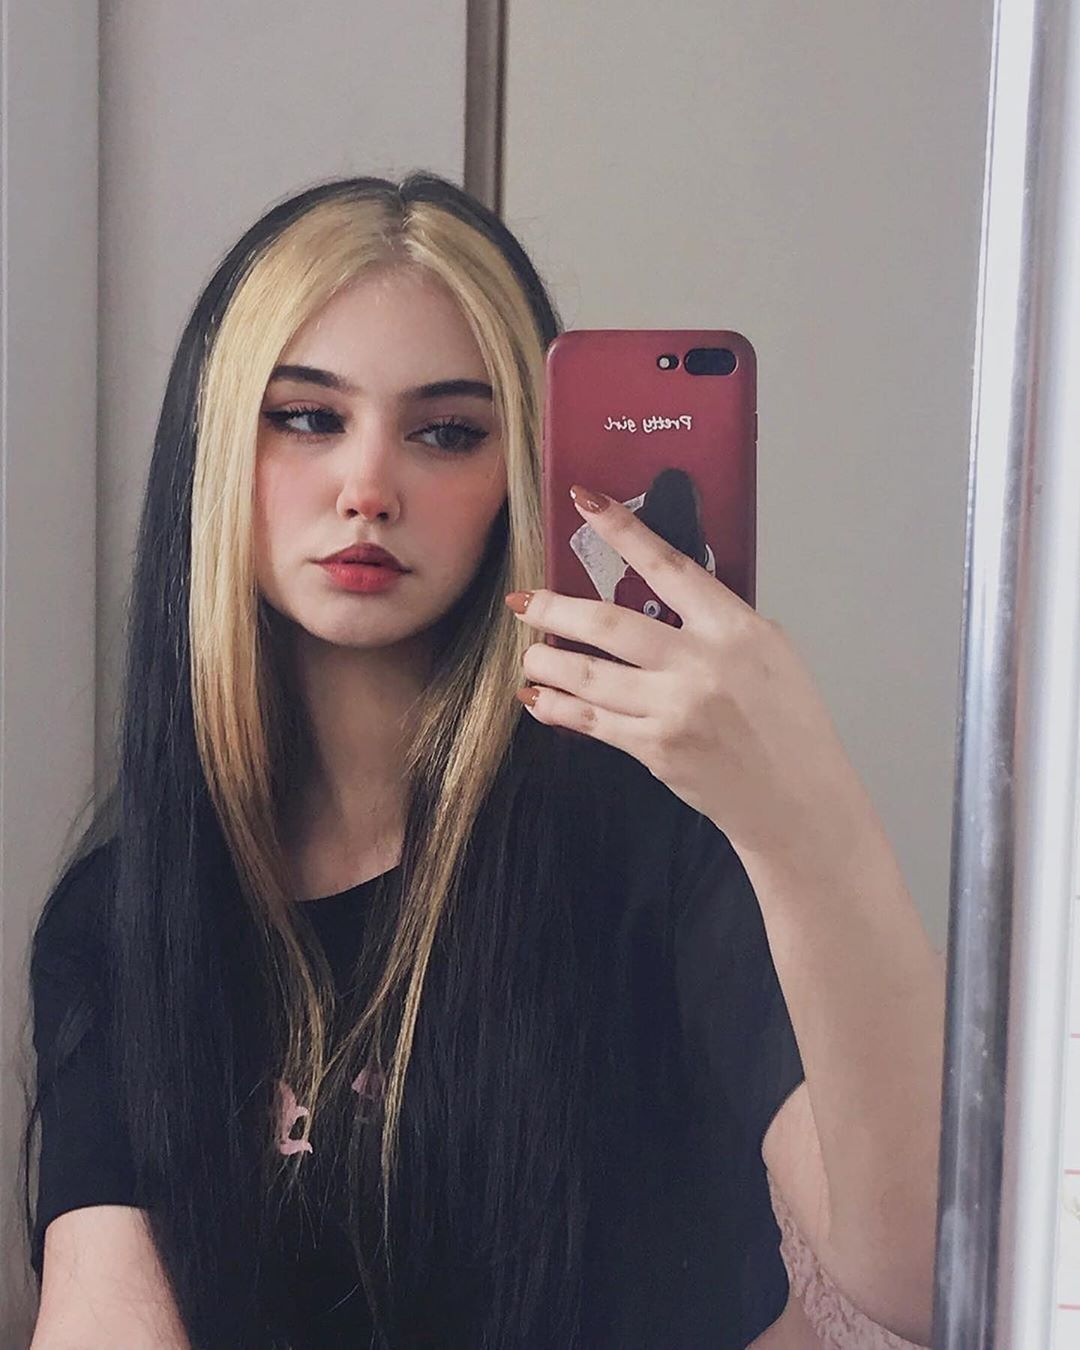 21 Trending E Girl Hairstyles Thatll Turn You Into A Tiktok Queen In 2020 Hair Color Streaks Hair Inspiration Color Girl Hair Colors